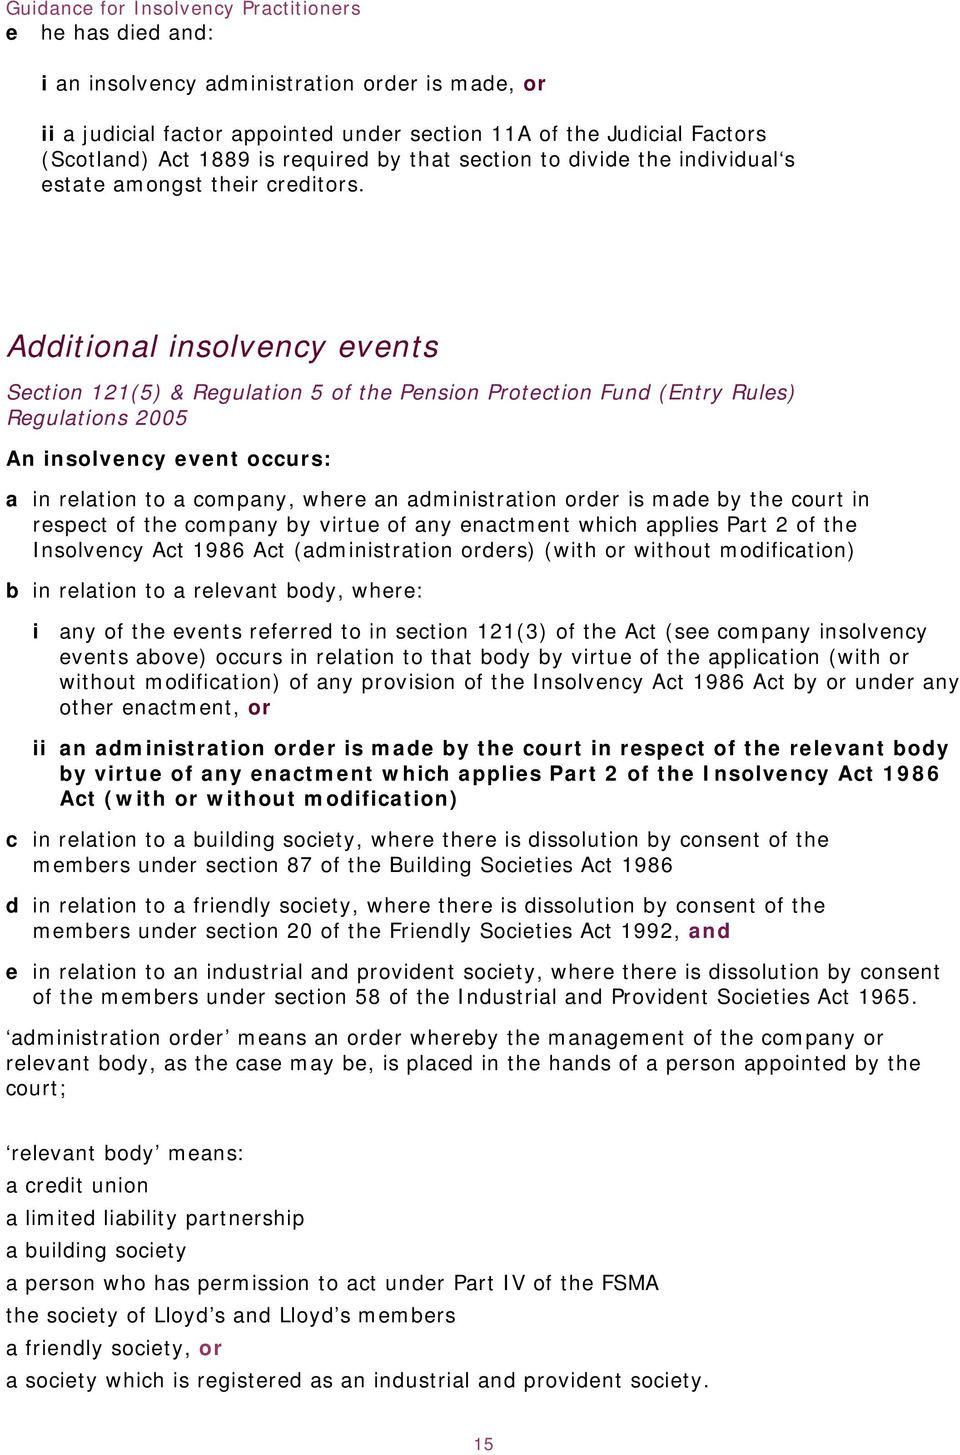 Additional insolvency events Section 121(5) & Regulation 5 of the Pension Protection Fund (Entry Rules) Regulations 2005 An insolvency event occurs: a in relation to a company, where an